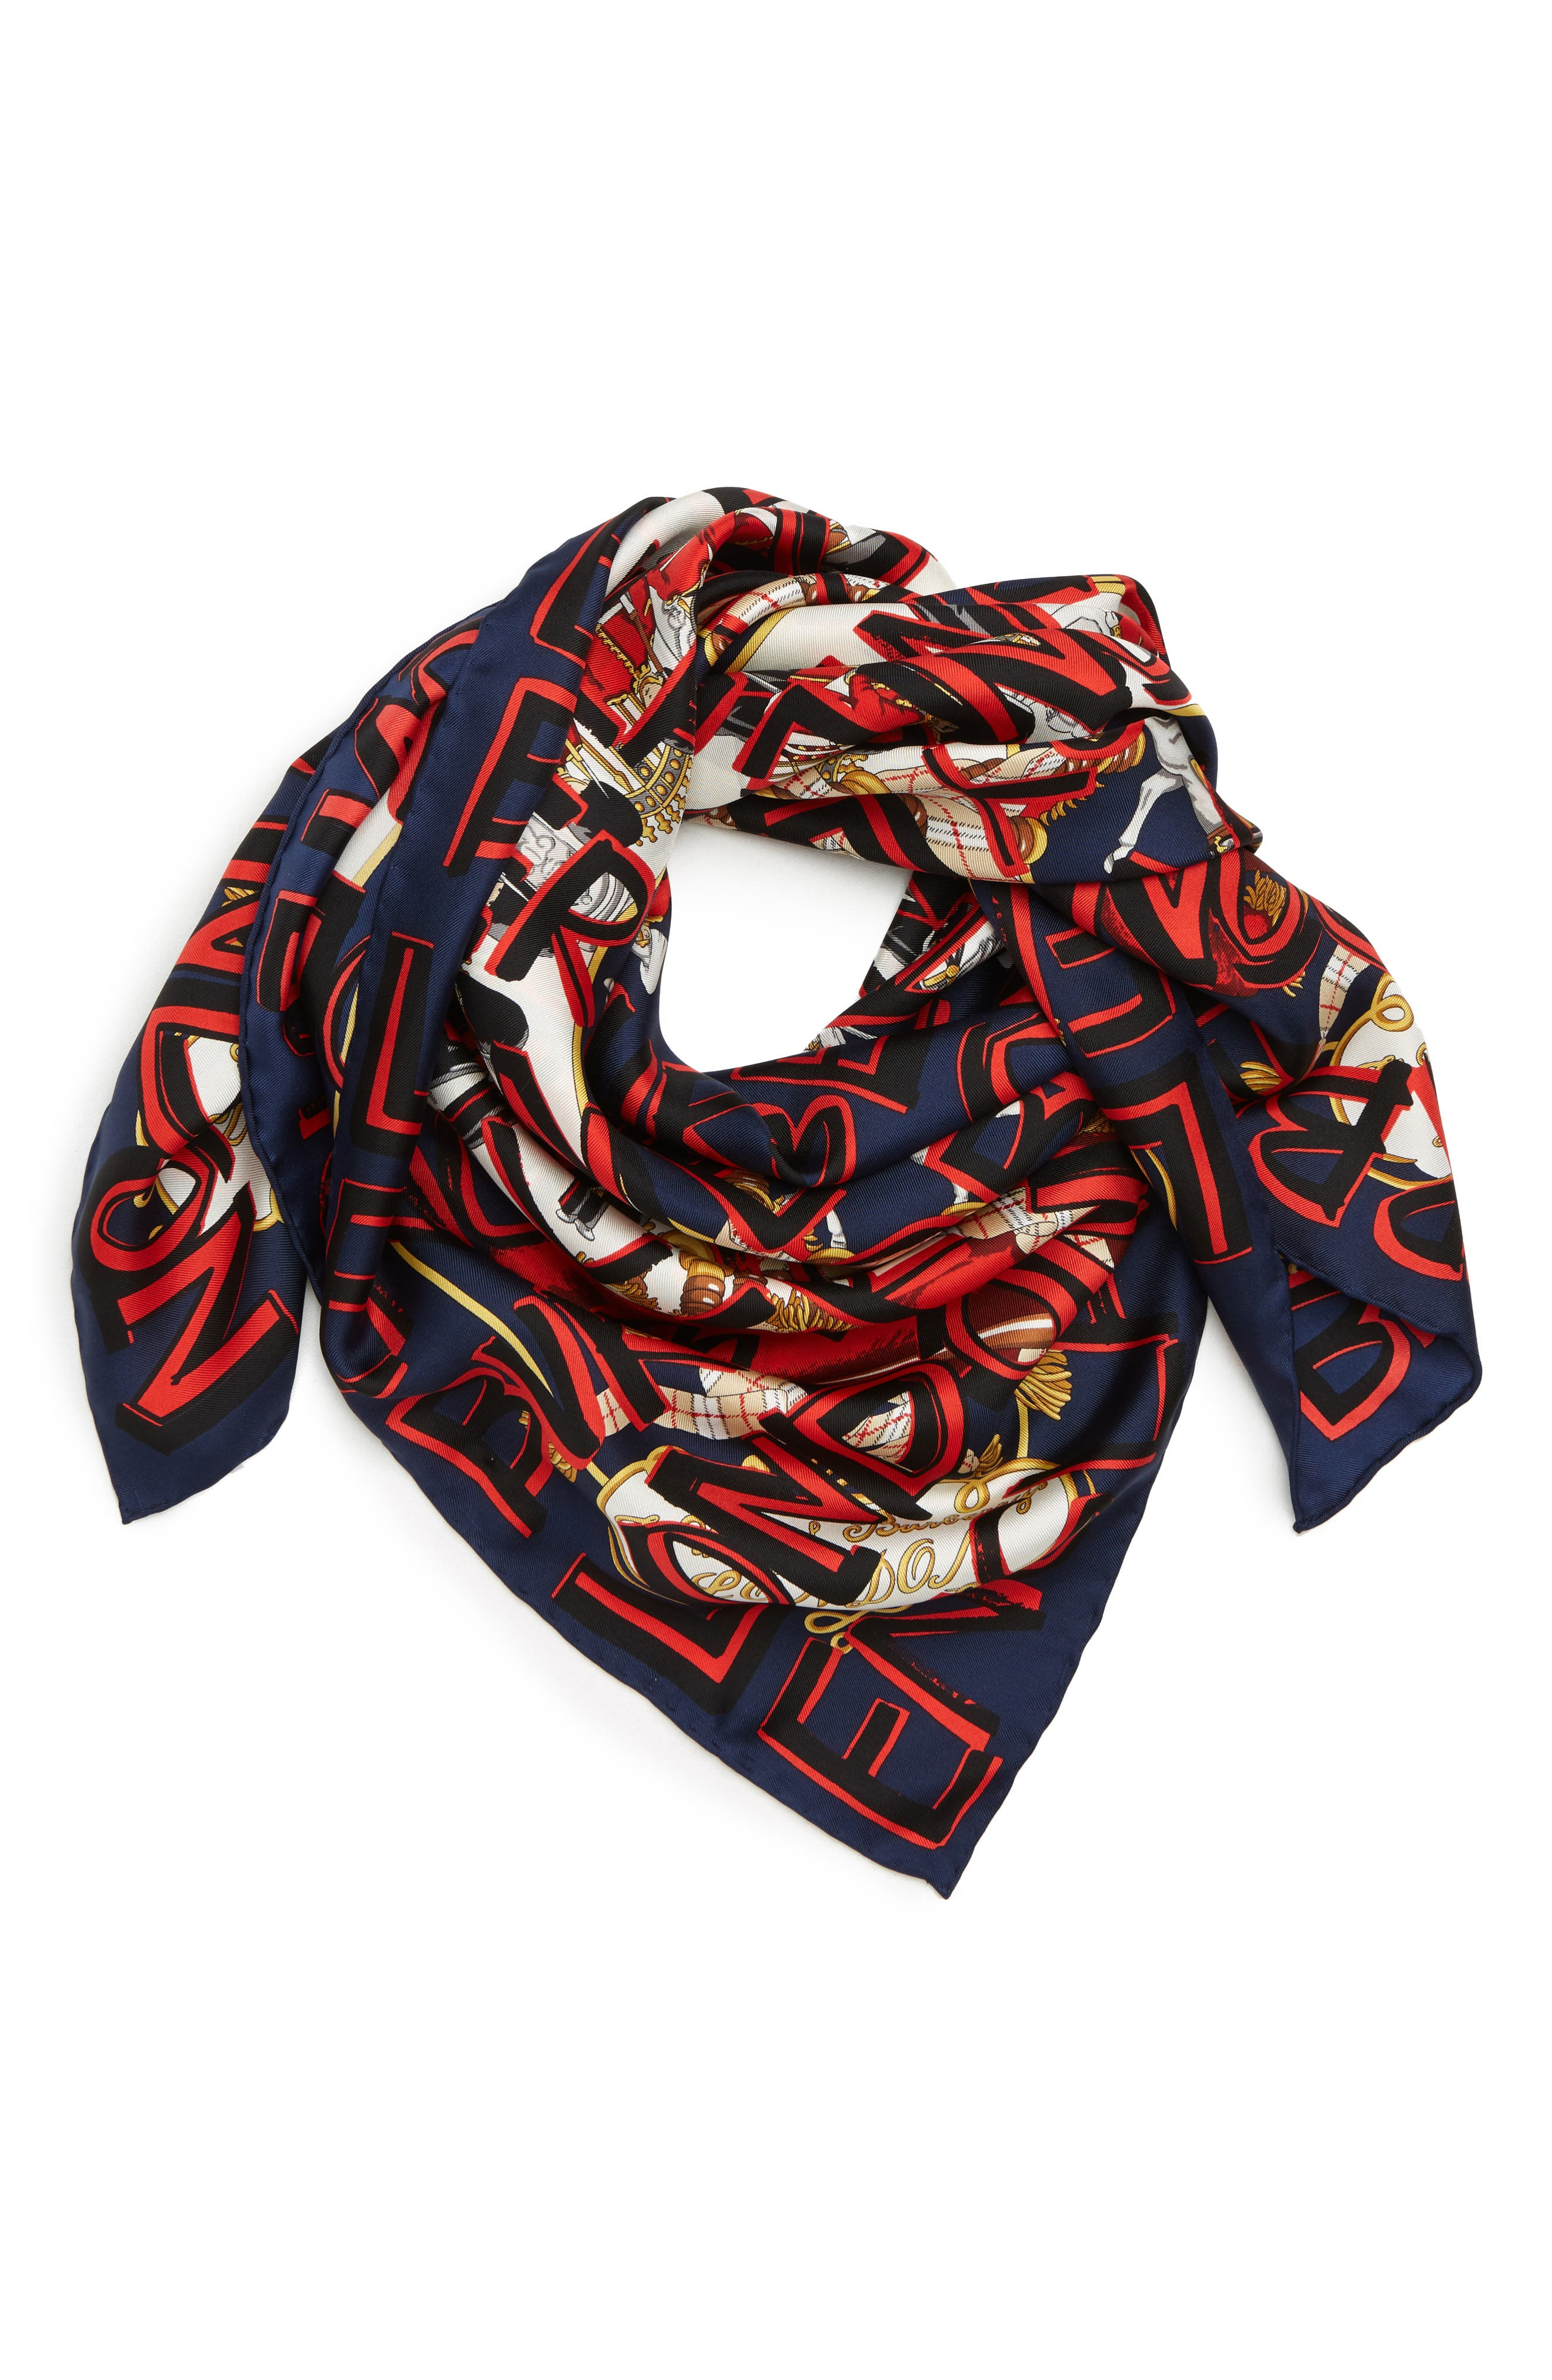 Guards Text Silk Square Scarf,                             Alternate thumbnail 2, color,                             NAVY